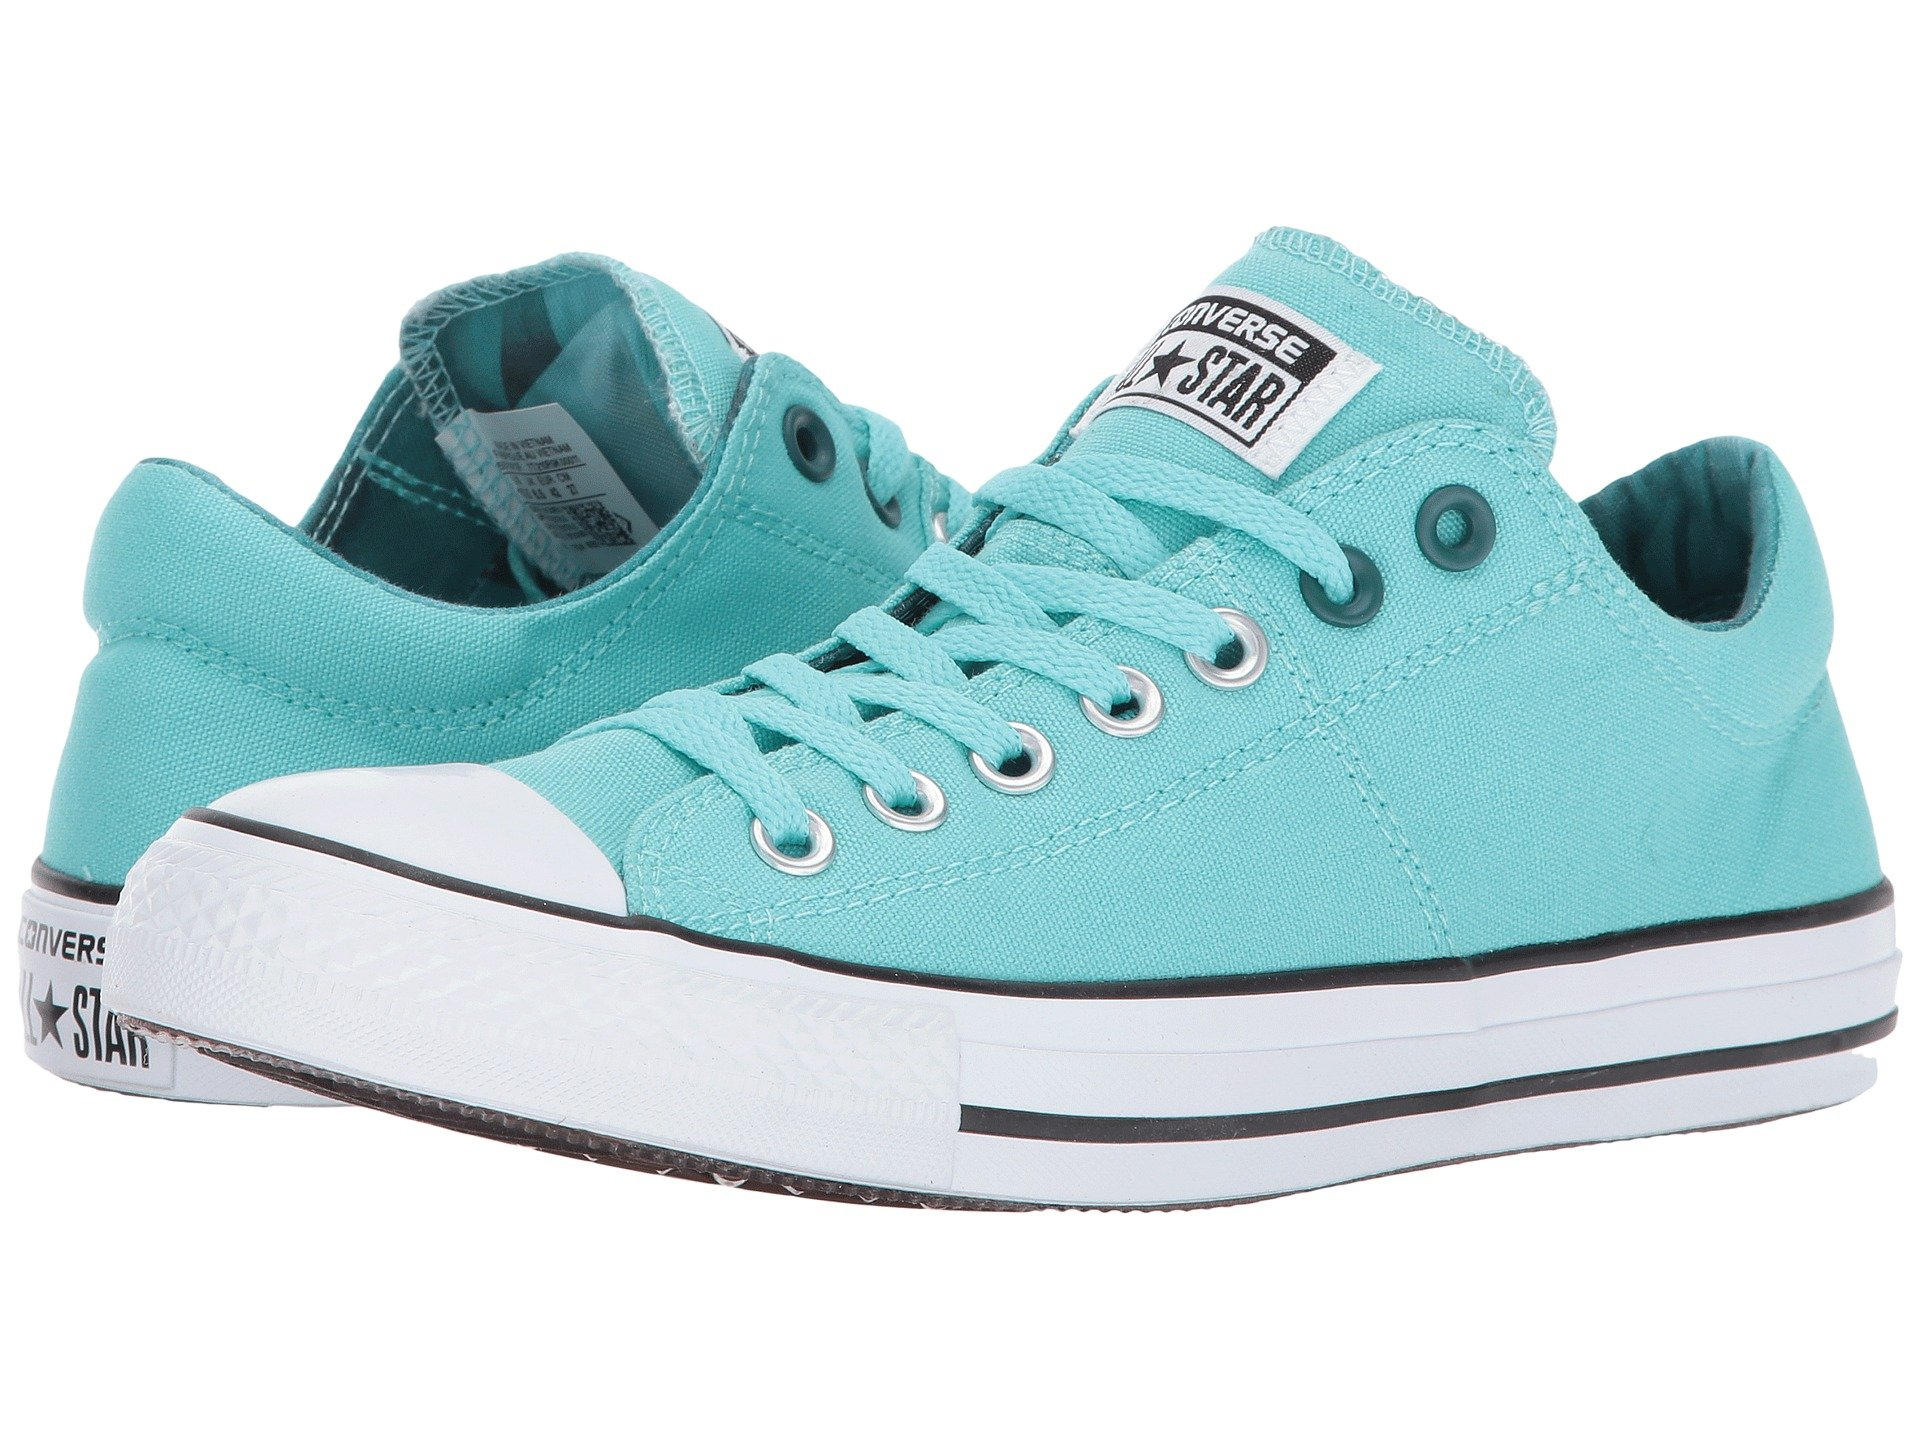 Converse Chuck Taylor All Star Madison Geometric - Ox In Light Aqua  Black White 4b3fe526ef8